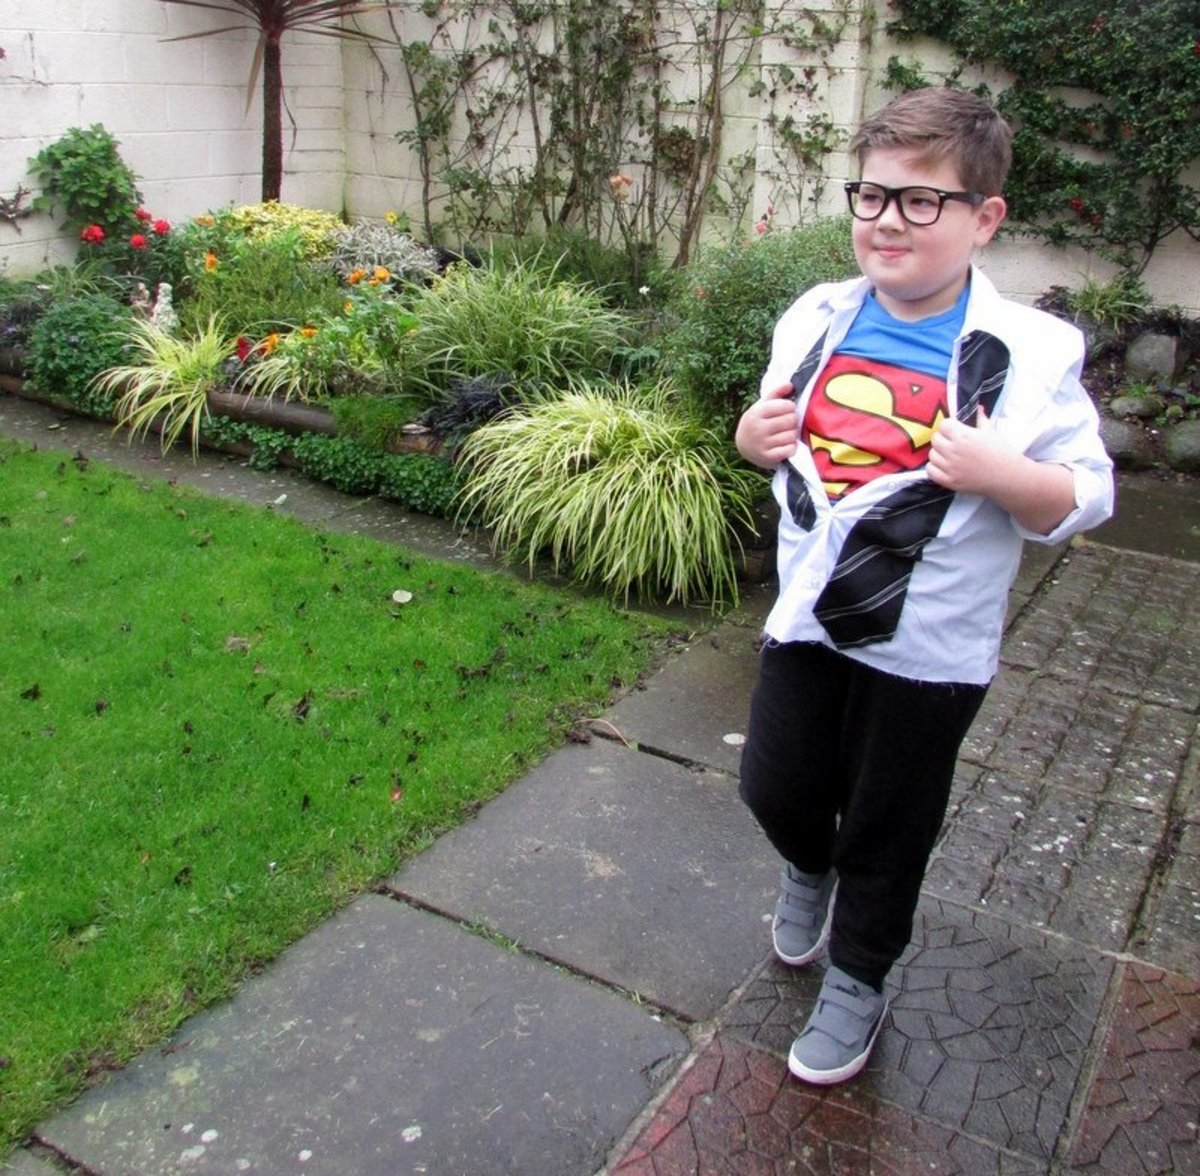 How to Make a Superman/Clark Kent Halloween Costume